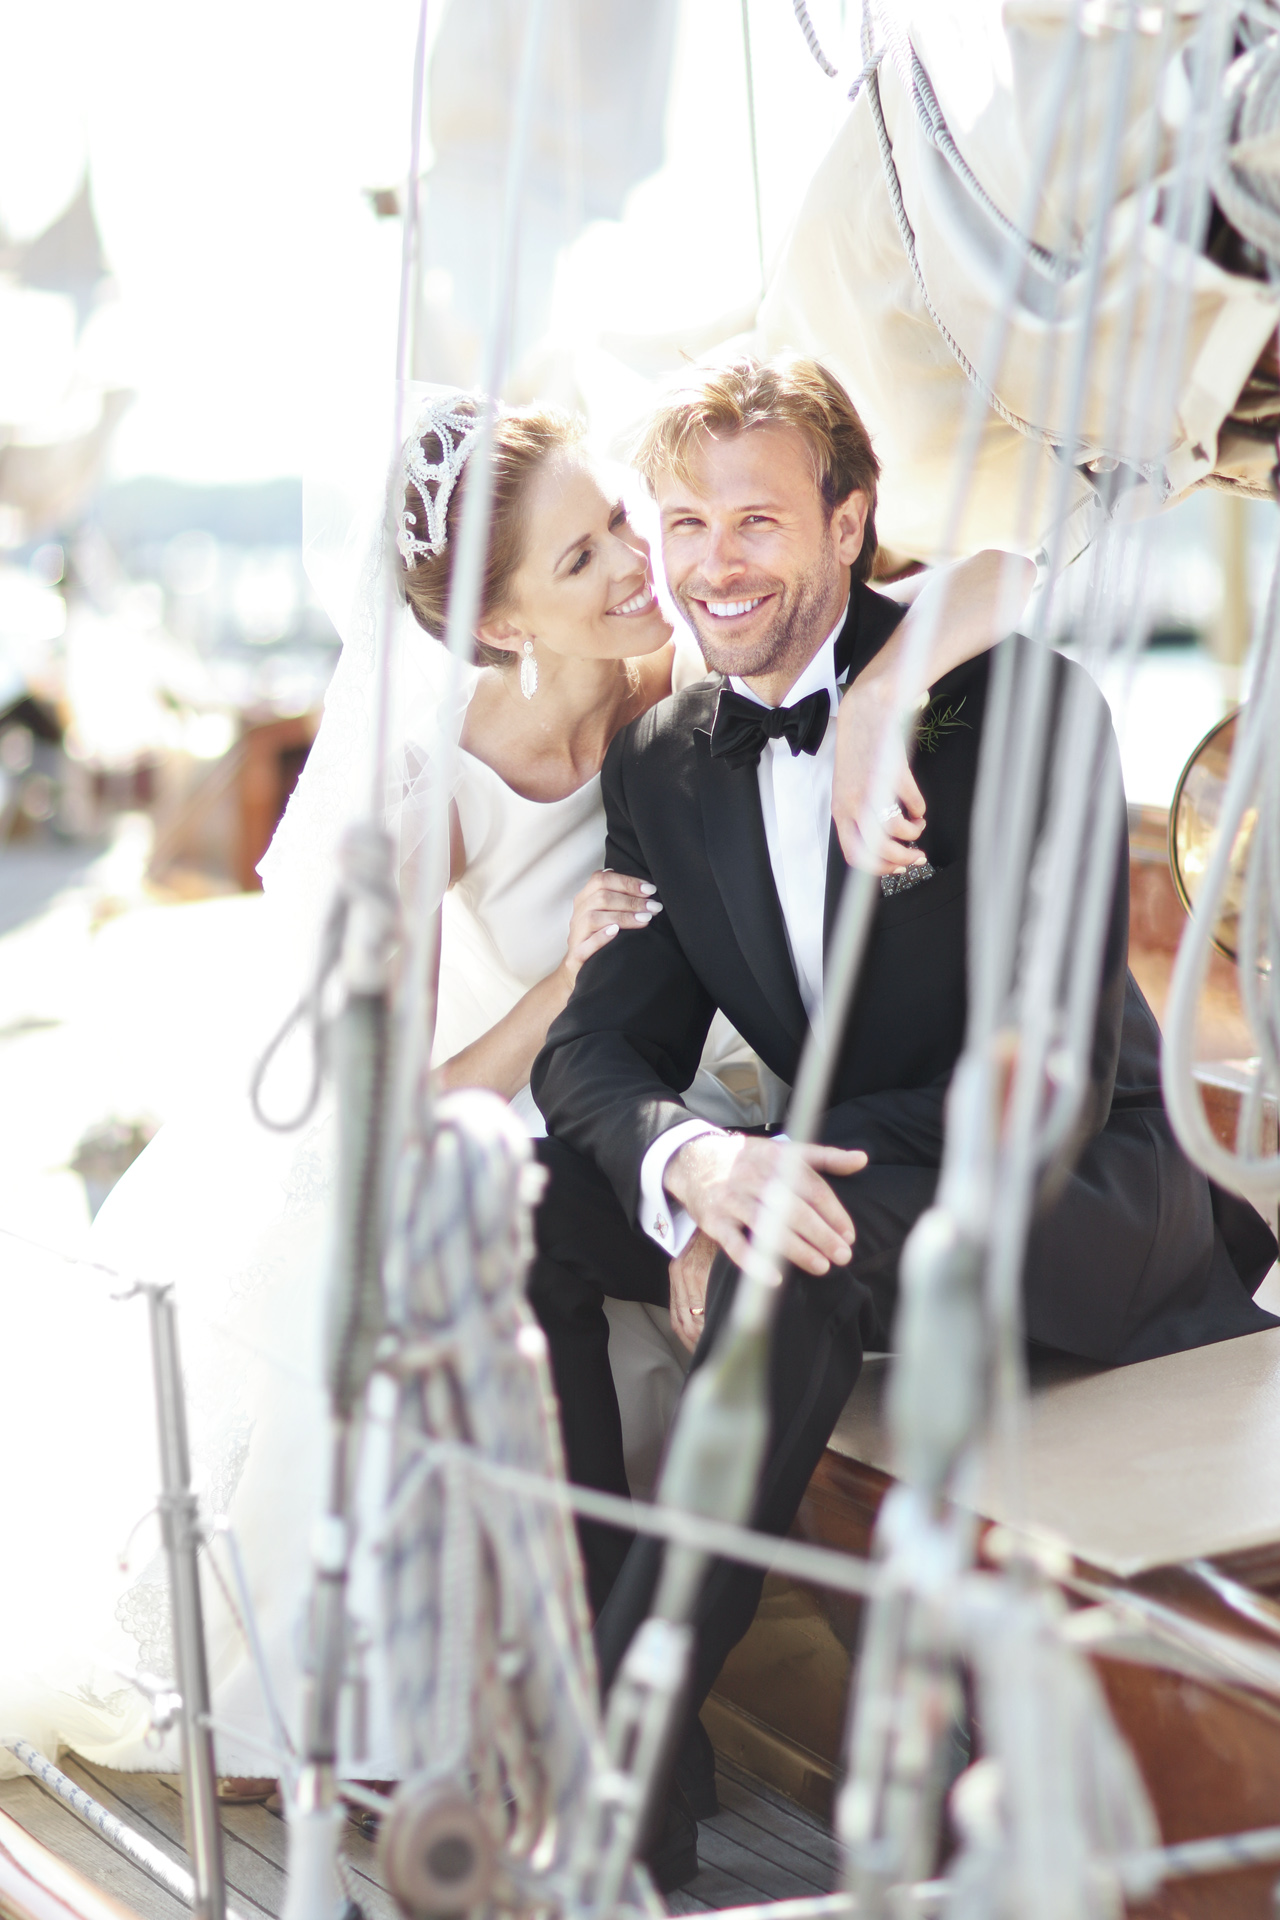 newlyweds on sailboat